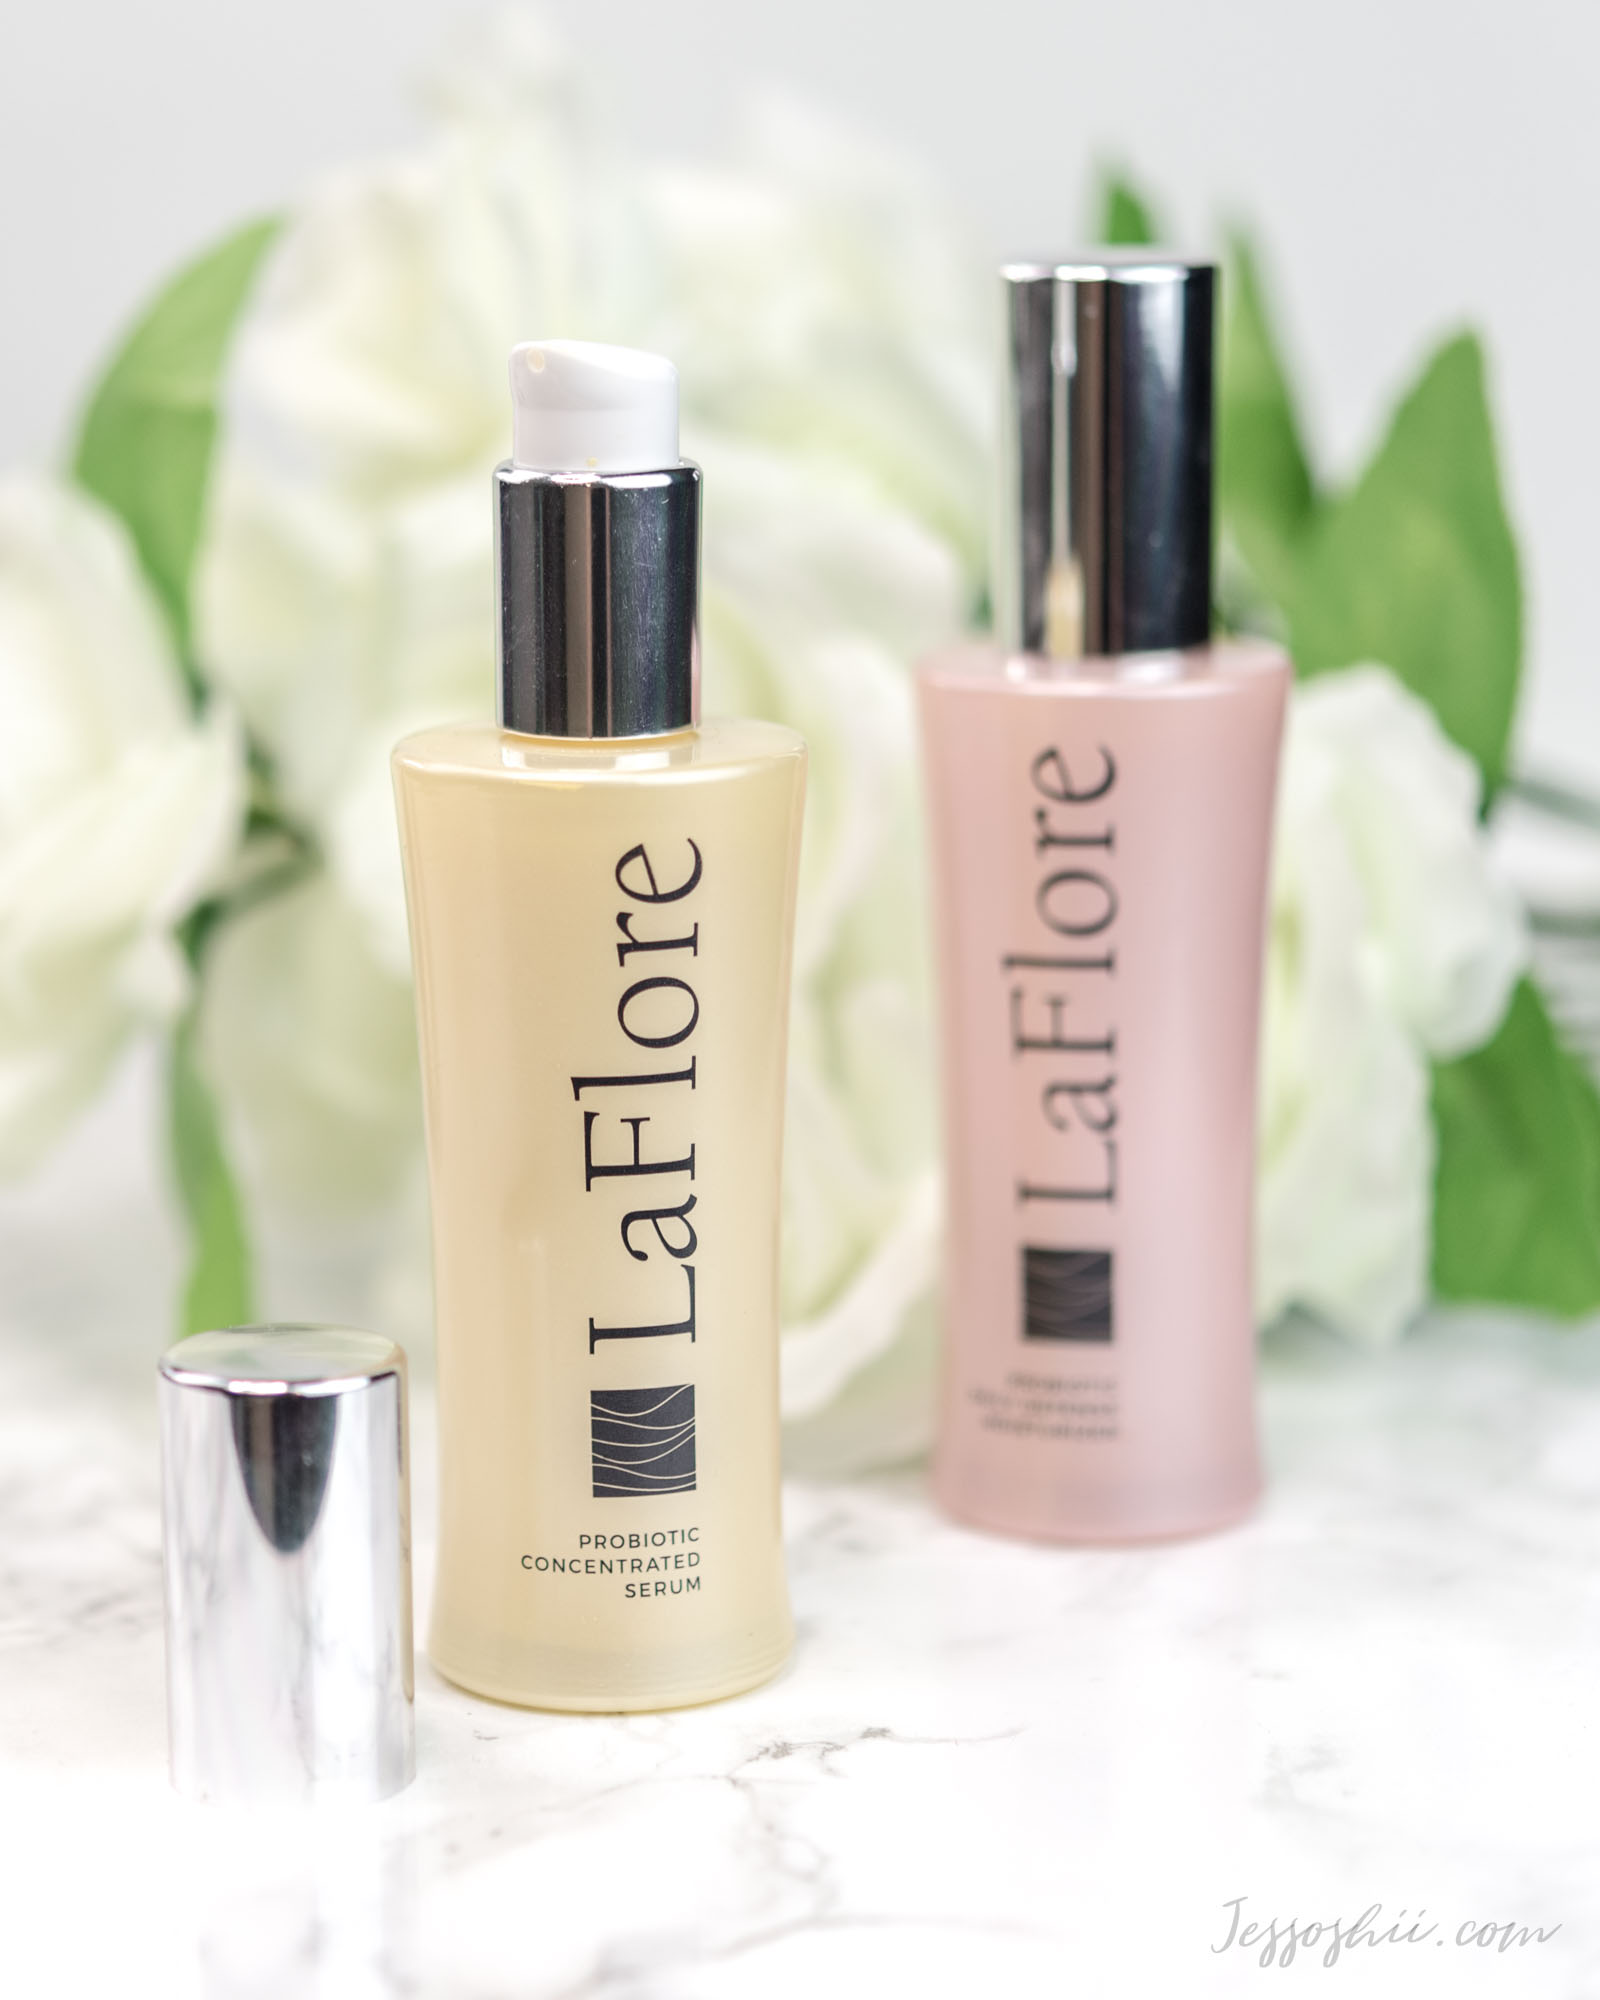 protect your skin microbiome - probiotic skincare from laflore